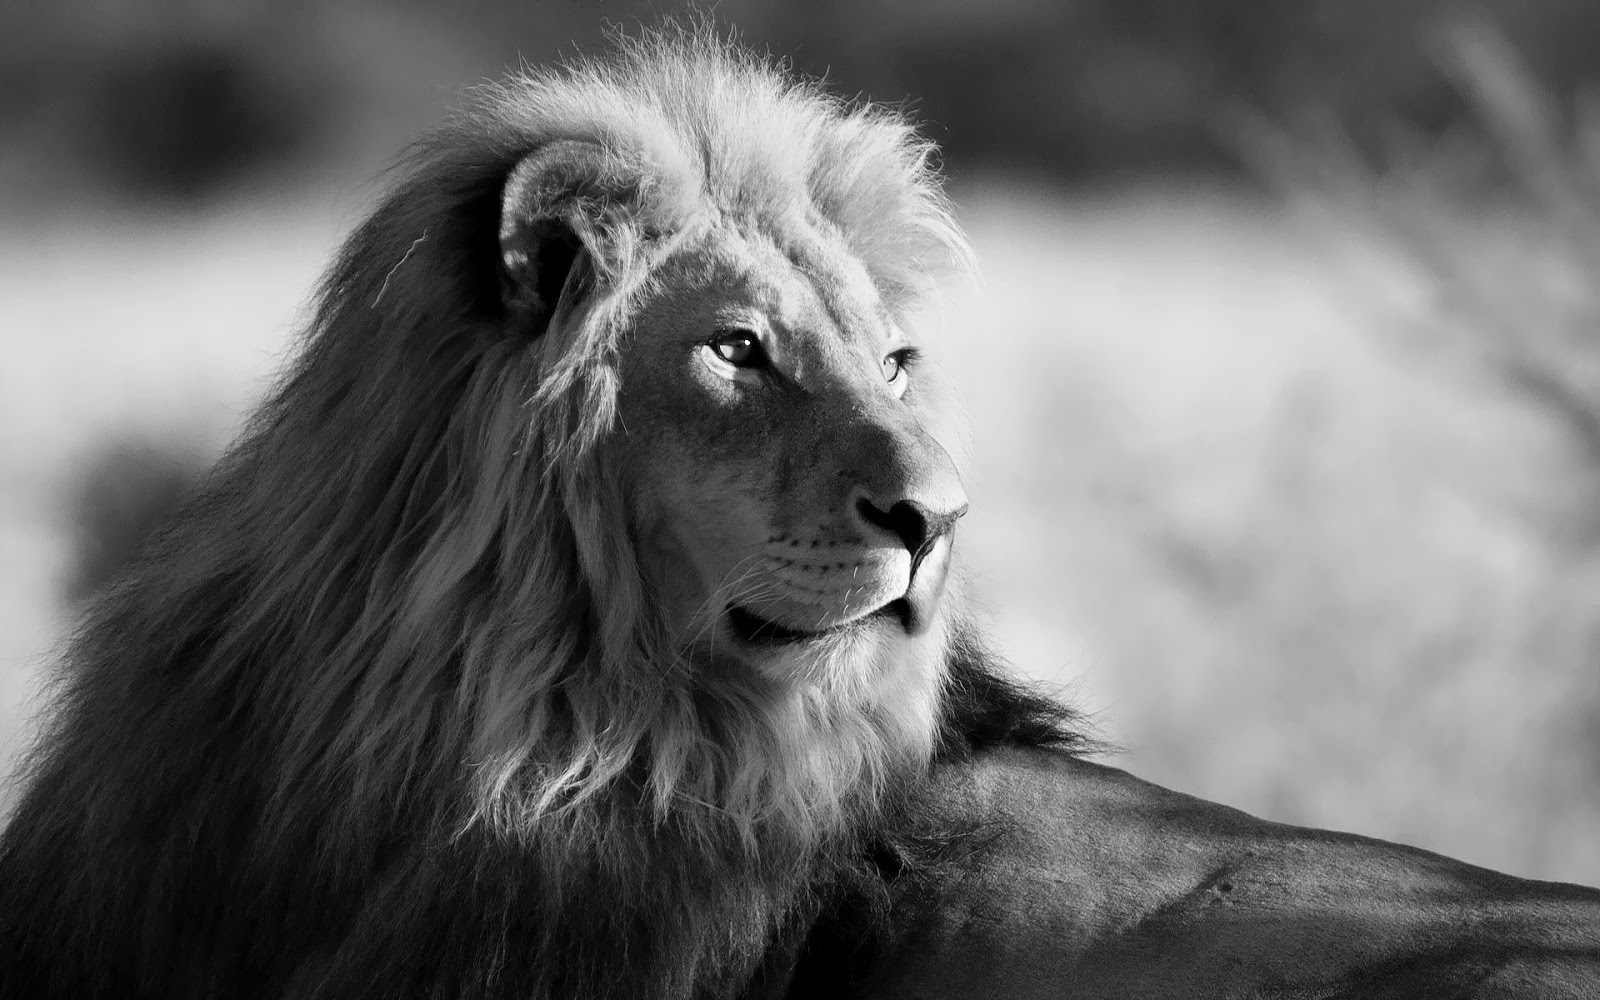 Black and white wallpaper with lion HD Animals Wallpapers 1600x1000